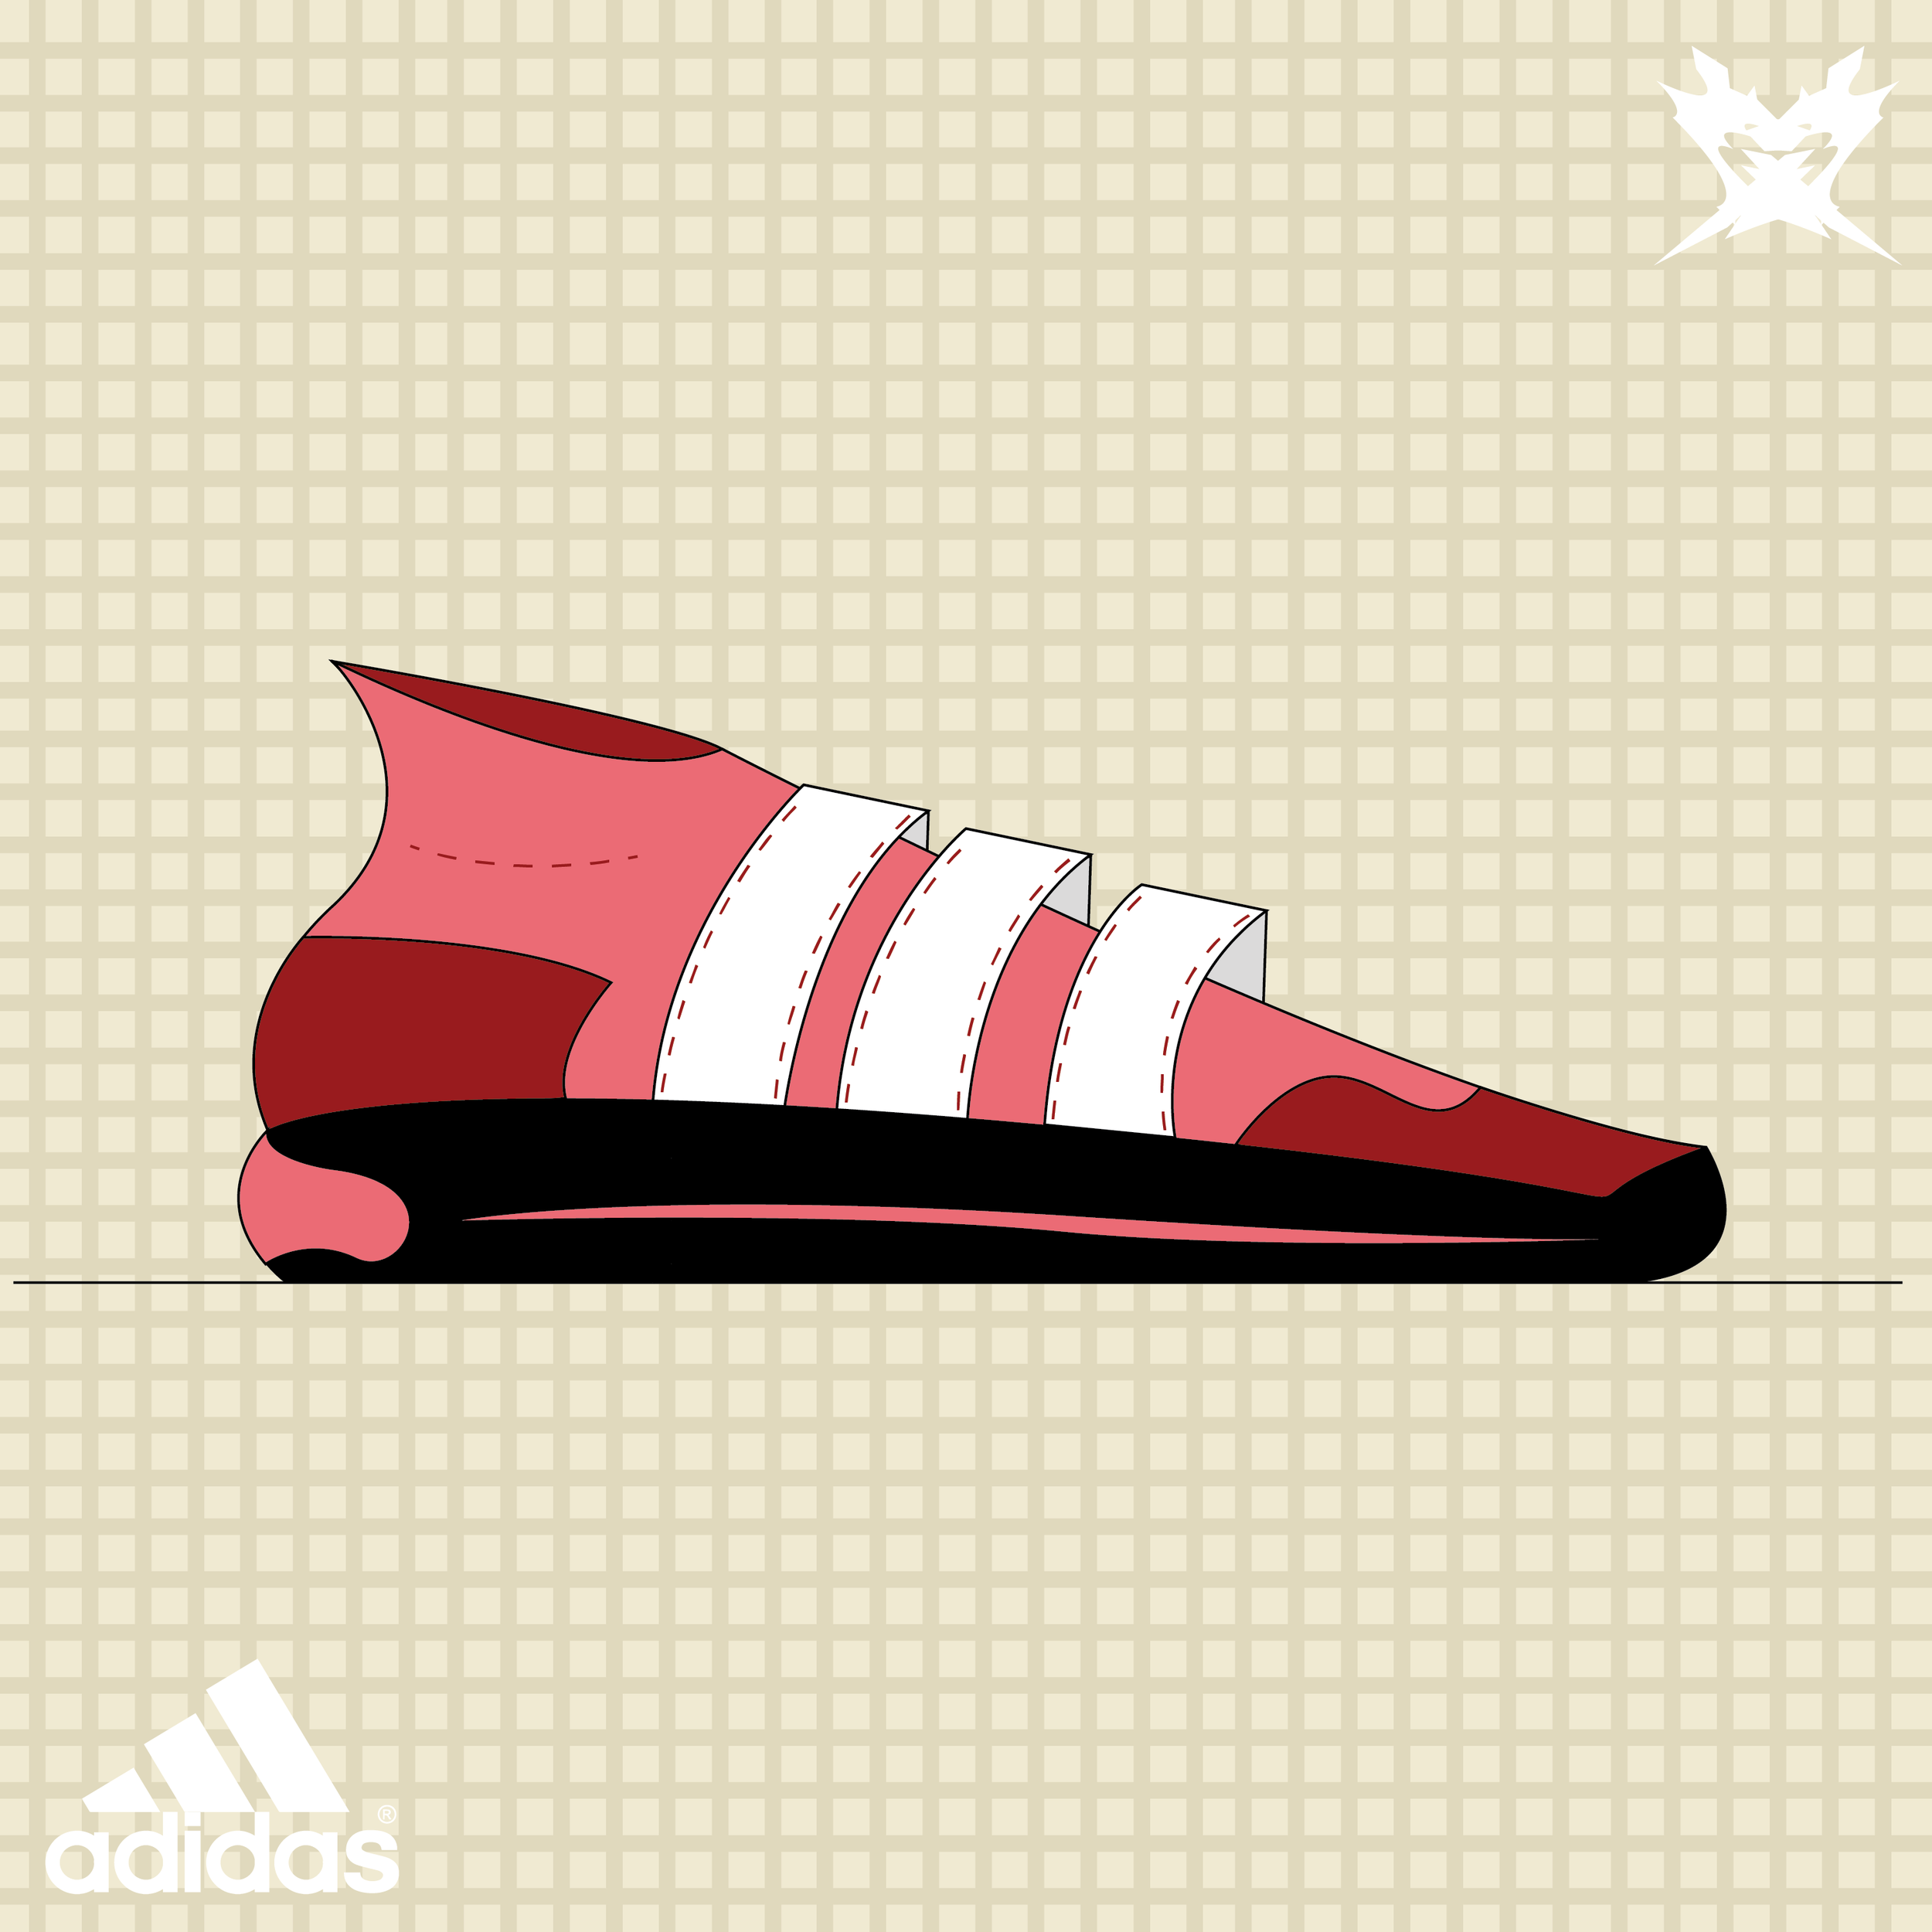 SneakerConcepts-01.png